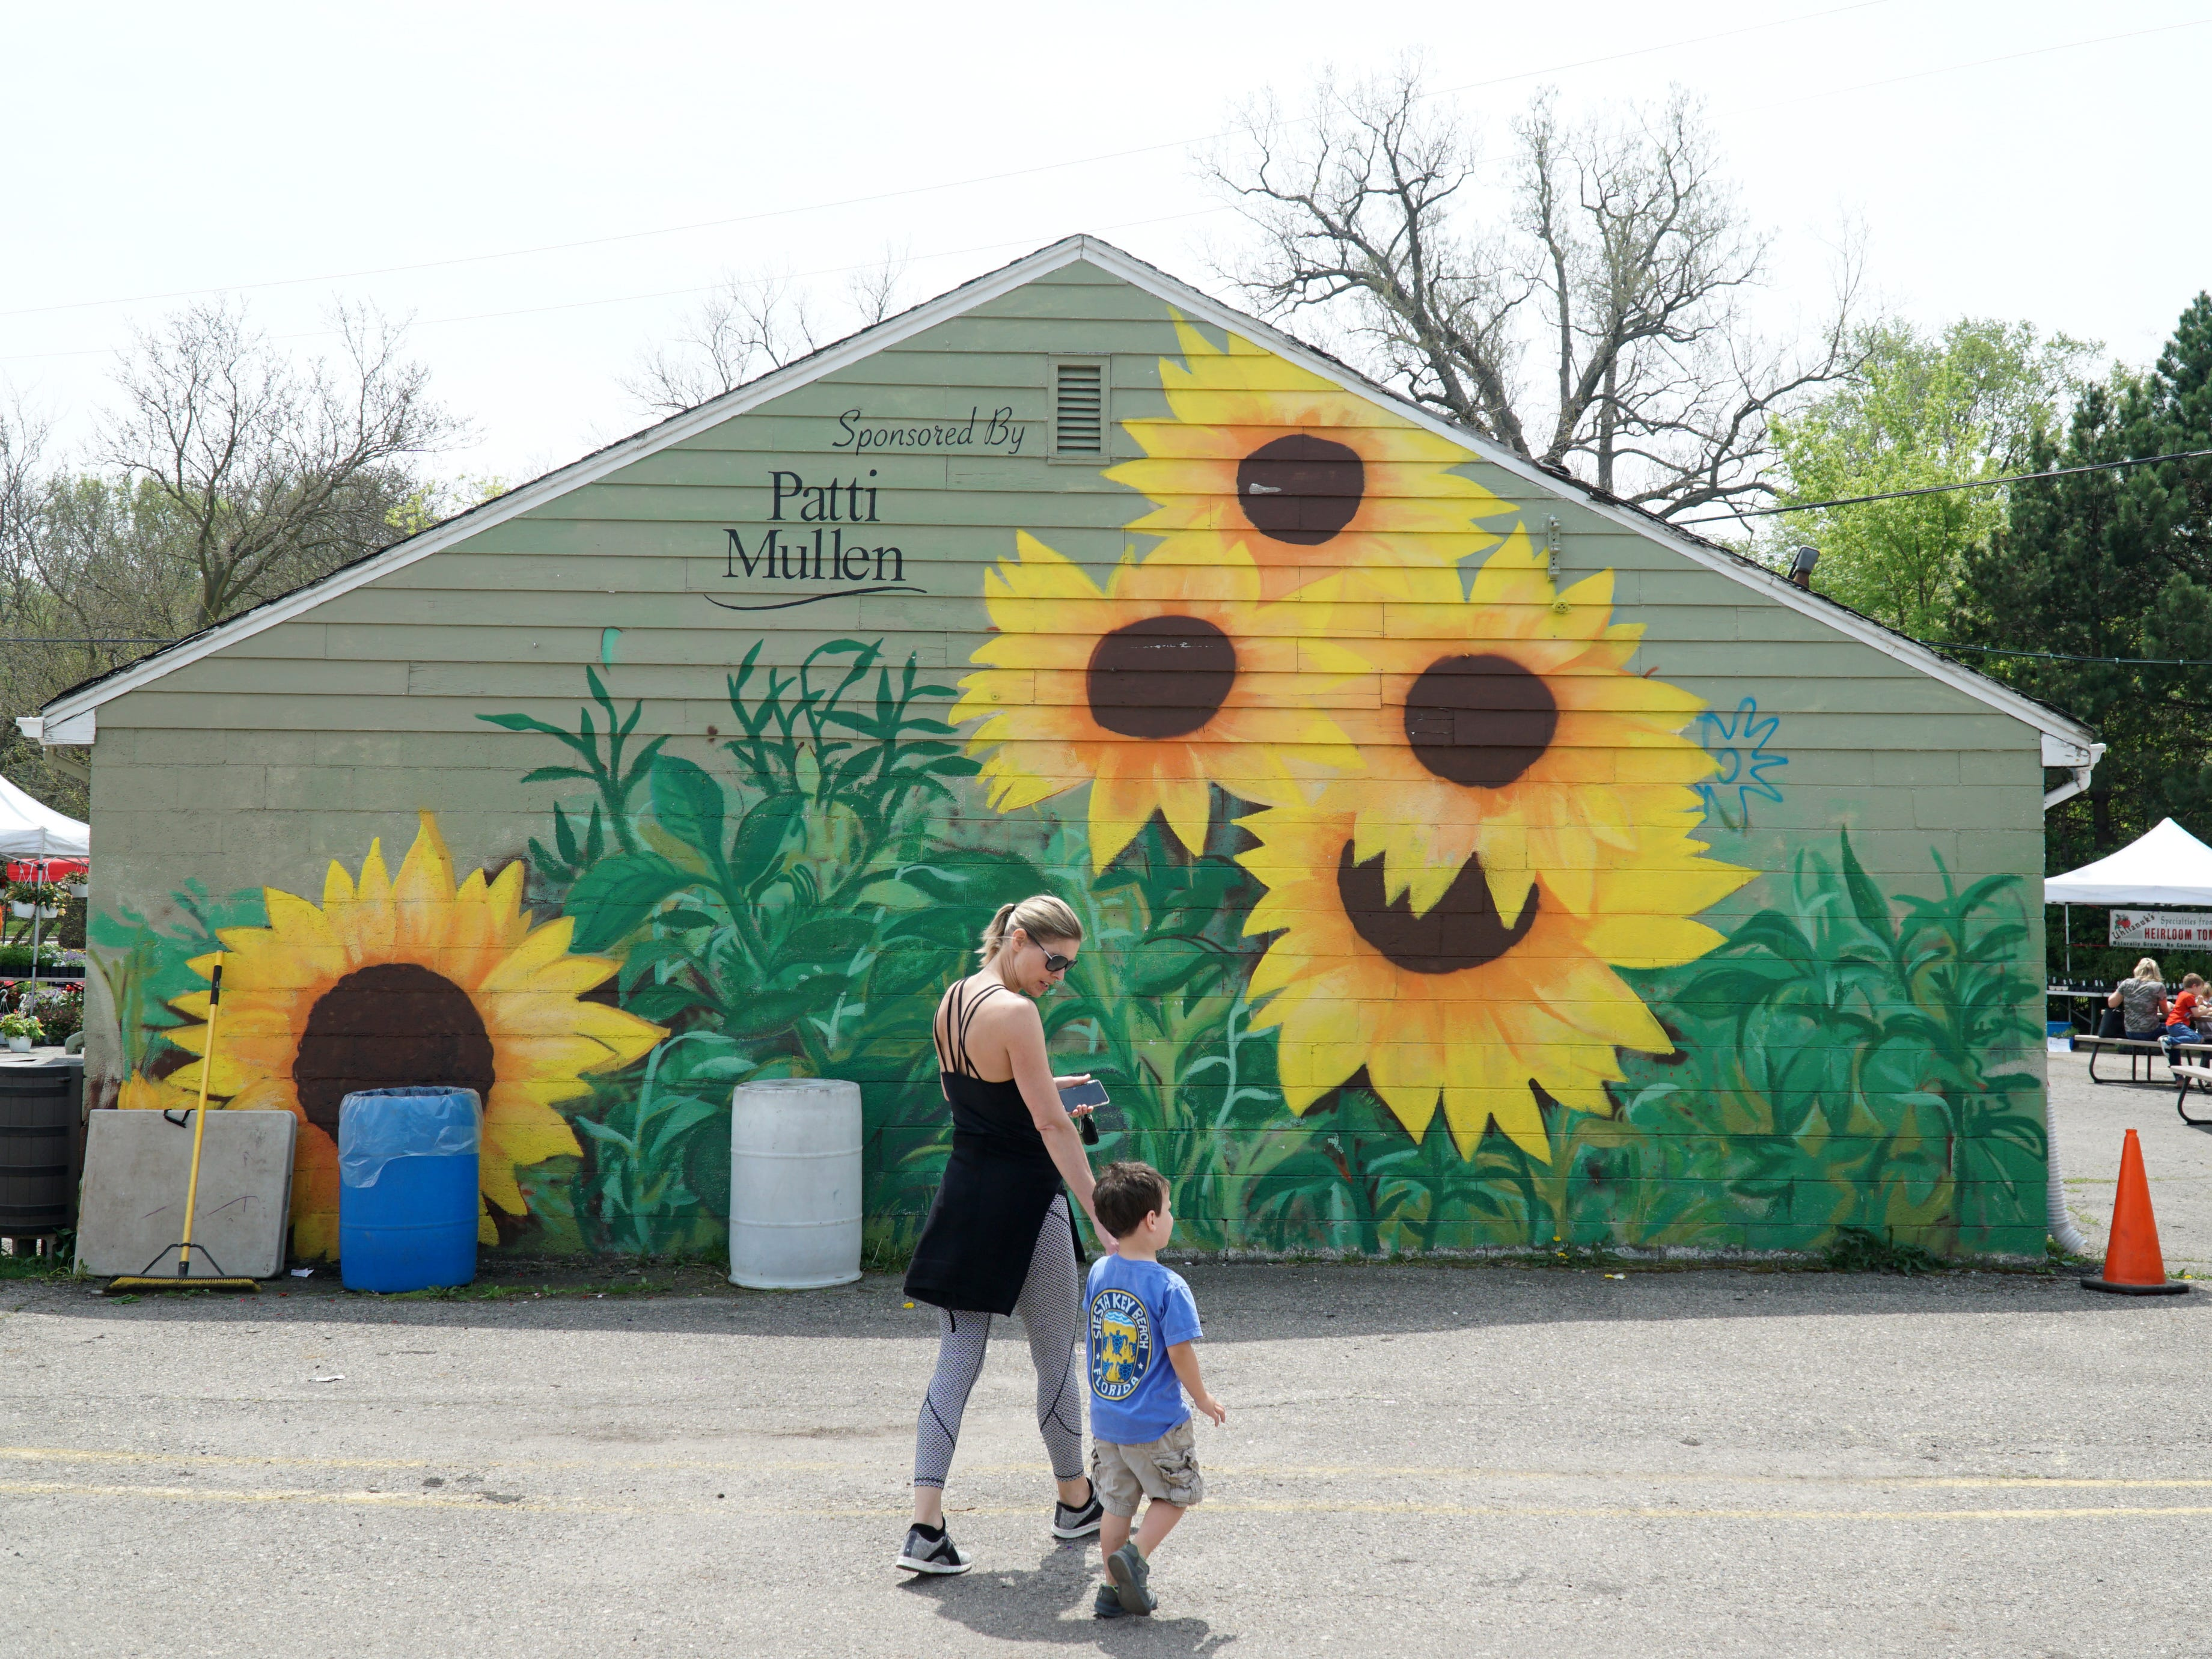 Lauren Poole-Romeo walks with friend of her family Matthew Corriveau near a sunflower mural at the Northville Famers Market on May 16. The duo were going to do some shopping after they had lunch at one of the market's food stalls.